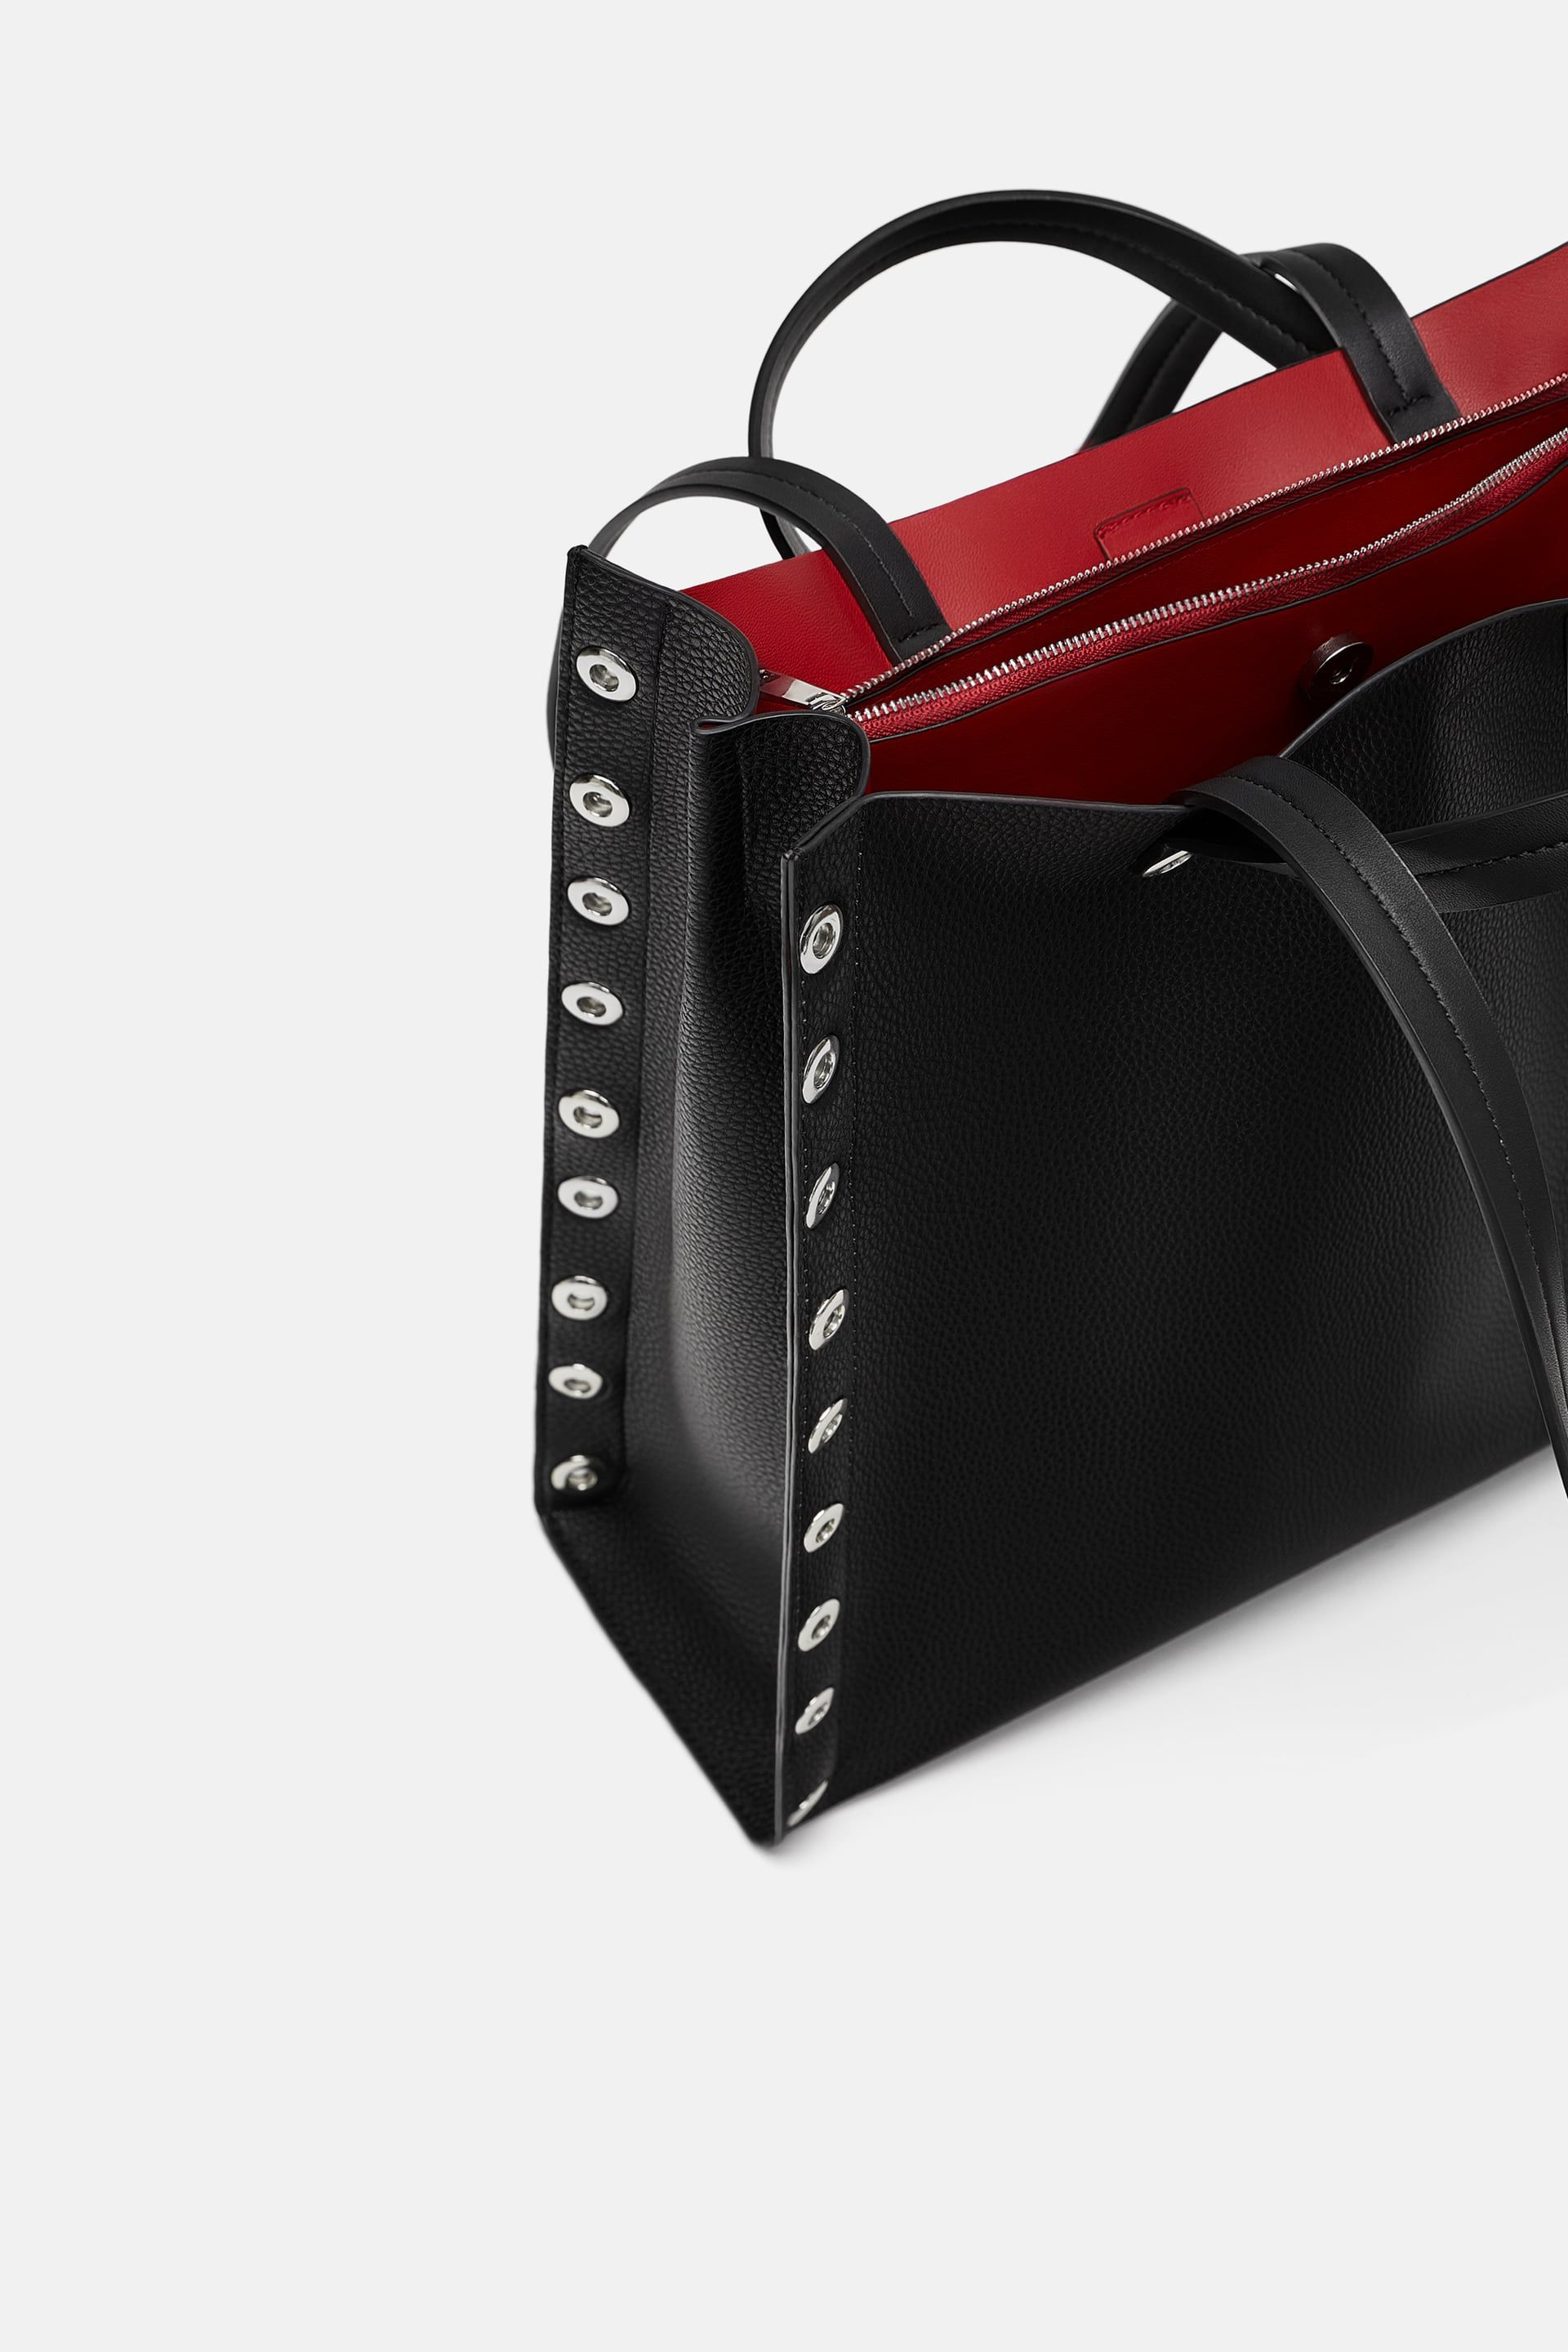 Zip Tote Bag With Studded Sides In 2020 Bags Black Tote